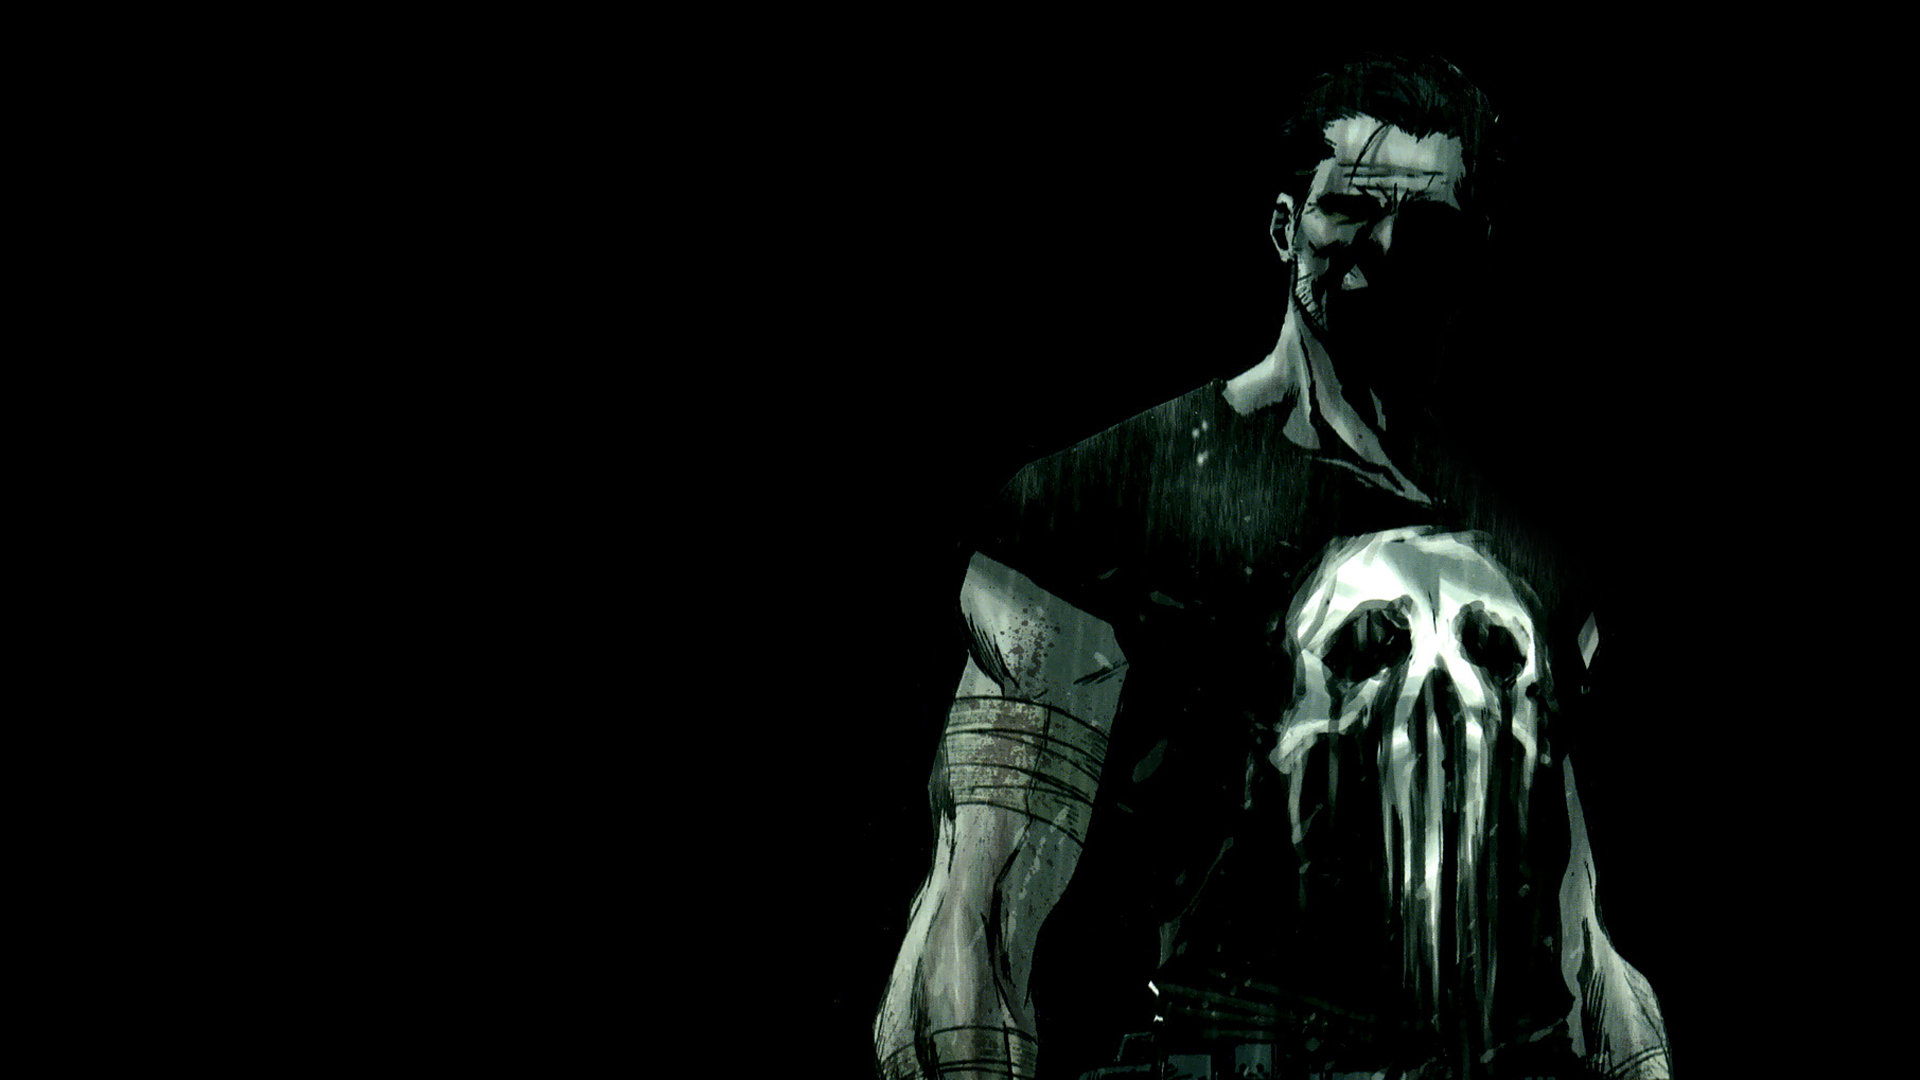 The Punisher Wallpapers 1920x1080 Full Hd 1080p Desktop Backgrounds